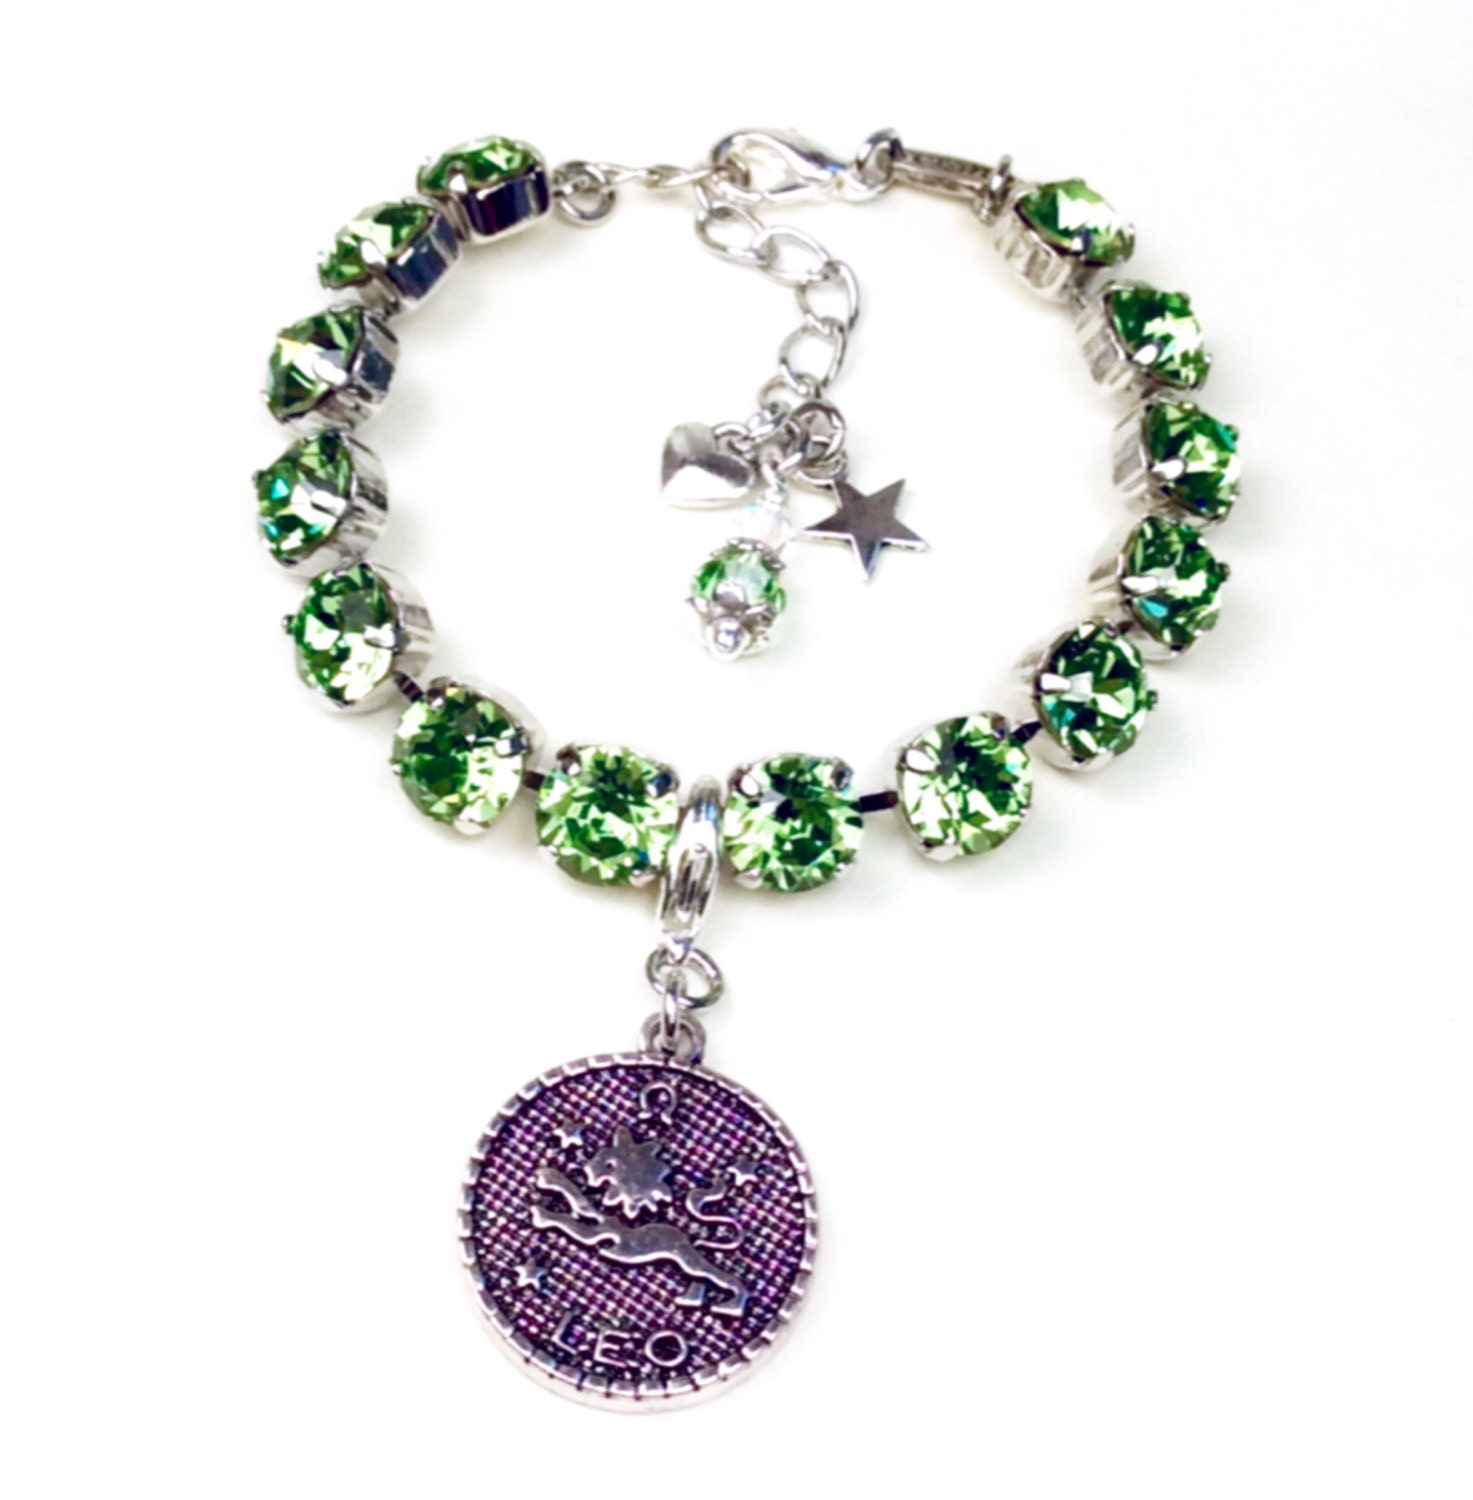 az necklace sterling bling jewelry crystal color birthstone toe august pmr silver peridot ring